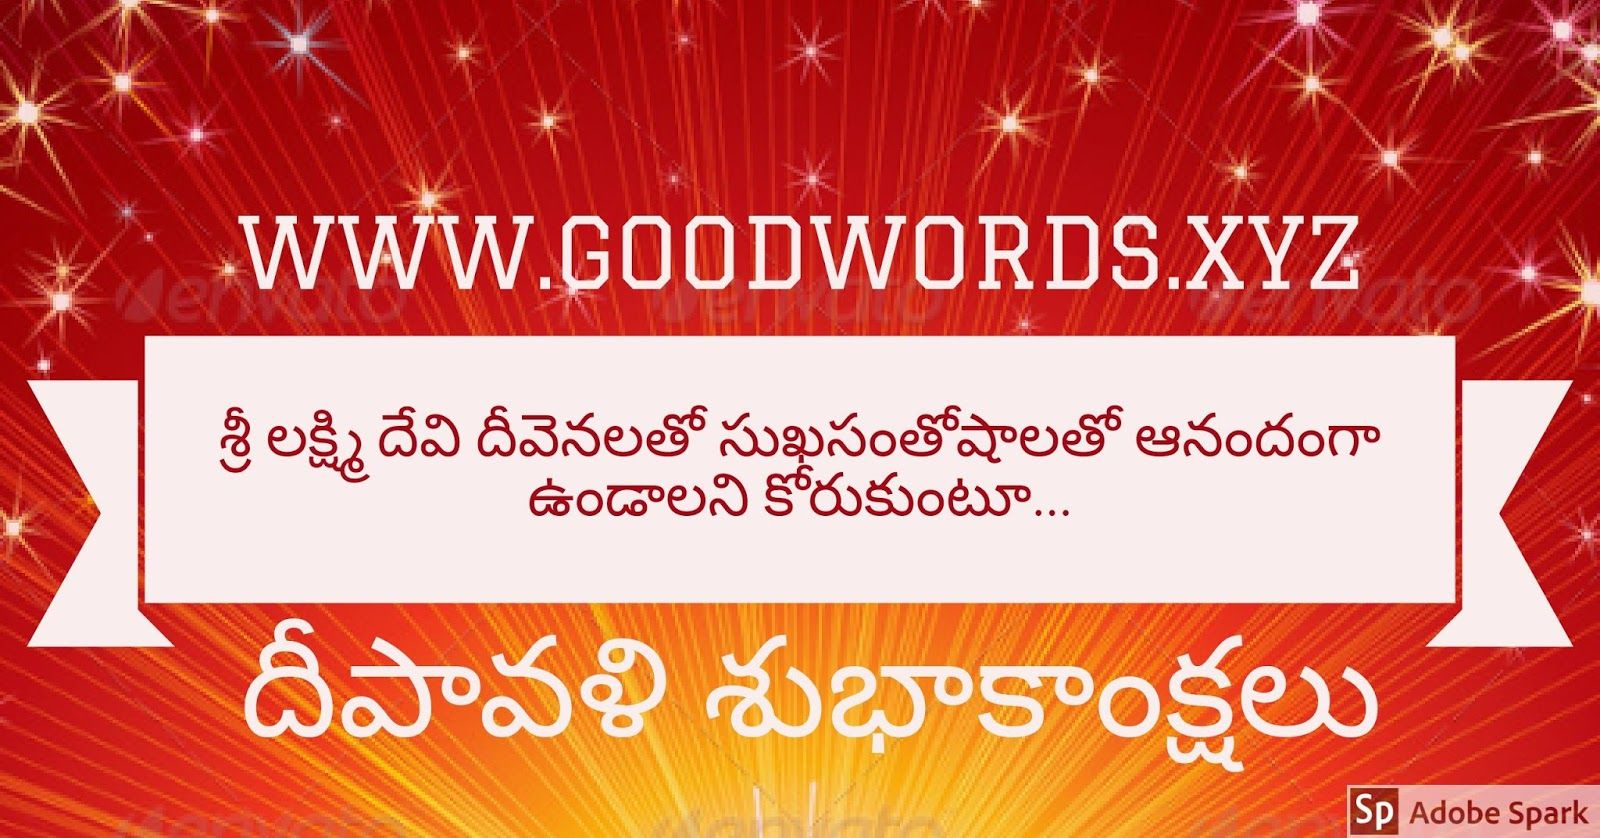 Telugu high quality diwali greetings pictures good words xyz telugu high quality diwali greetings pictures m4hsunfo